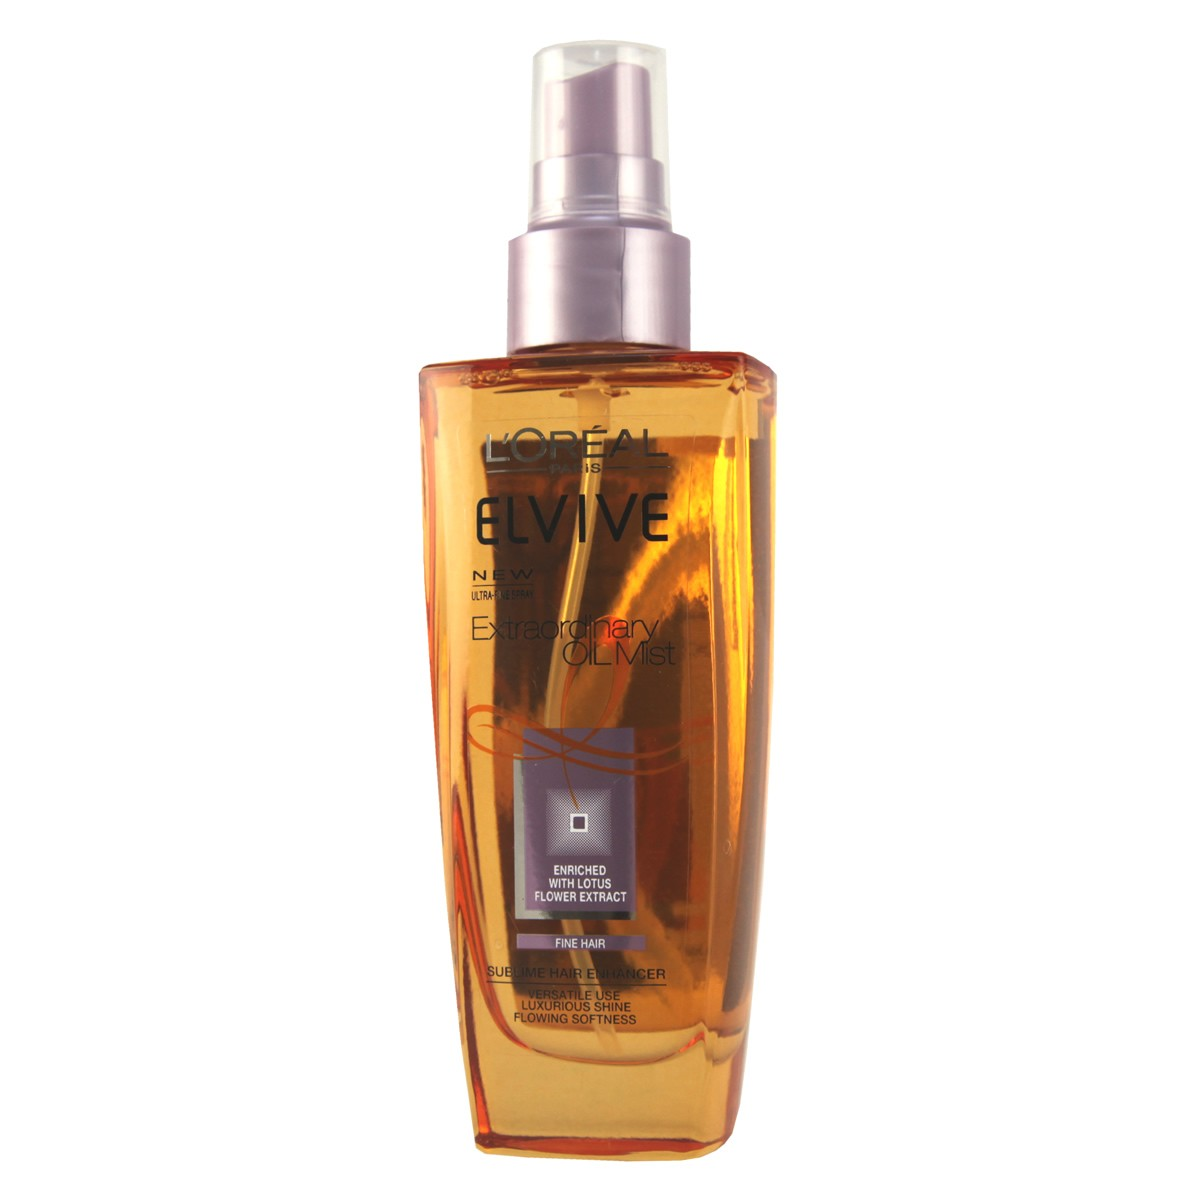 L'Oreal Paris Elvive Extraordinary Oil Mist - Fine Hair